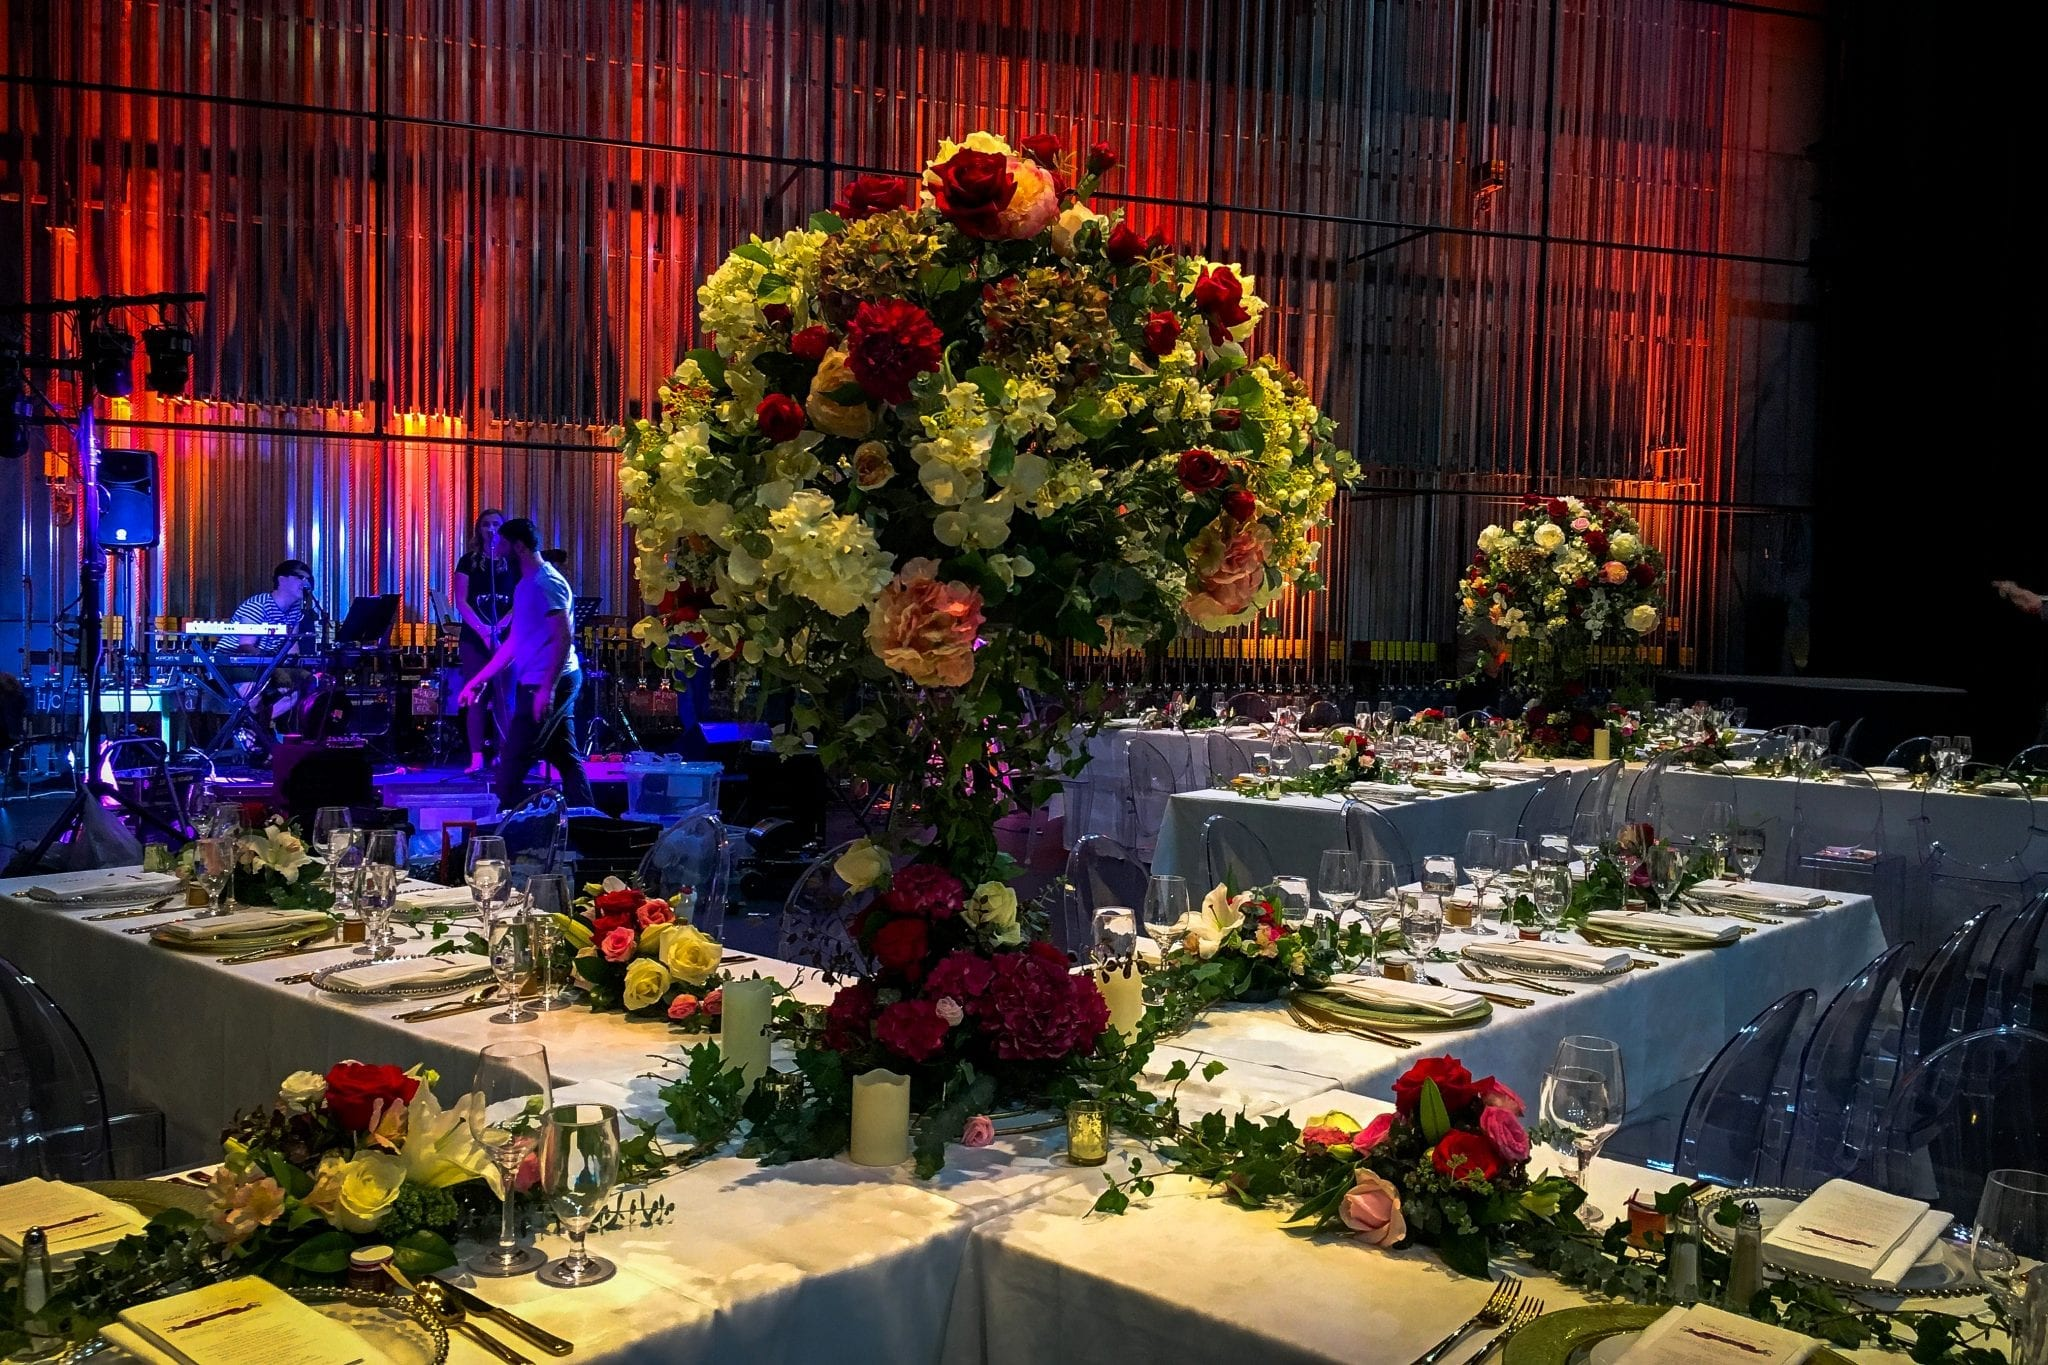 Kim Chan Events| candelabra style arrangements, laid out off tables in X format,  Isaac Theatre Royal Christchurch